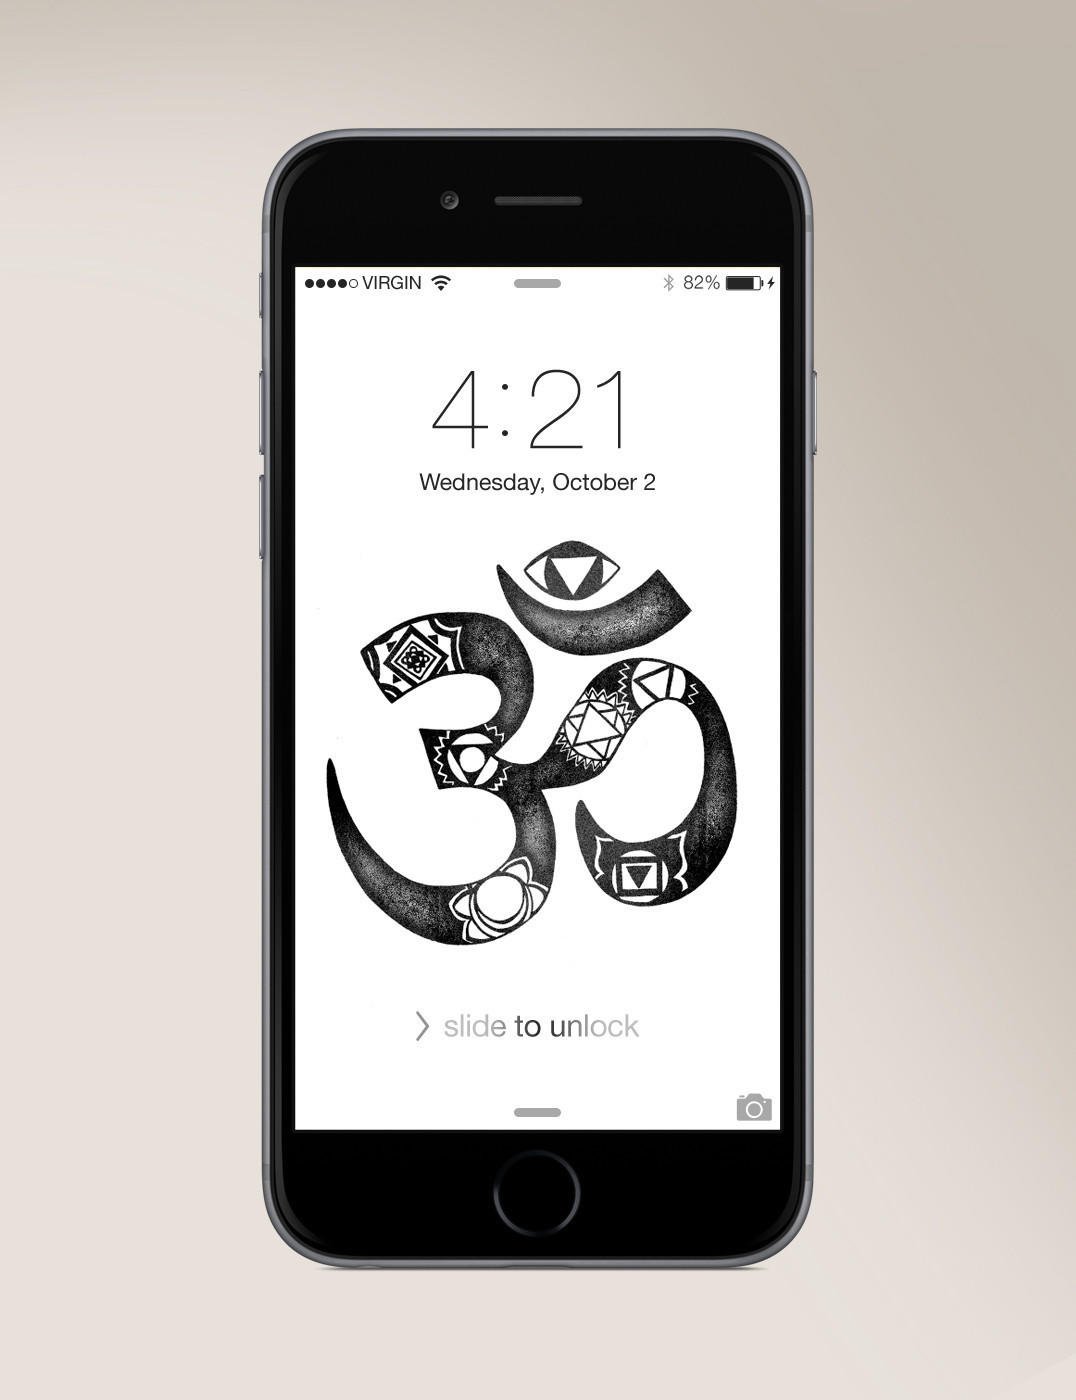 free - chakra om iphone/android wallpaper from sivana | things i